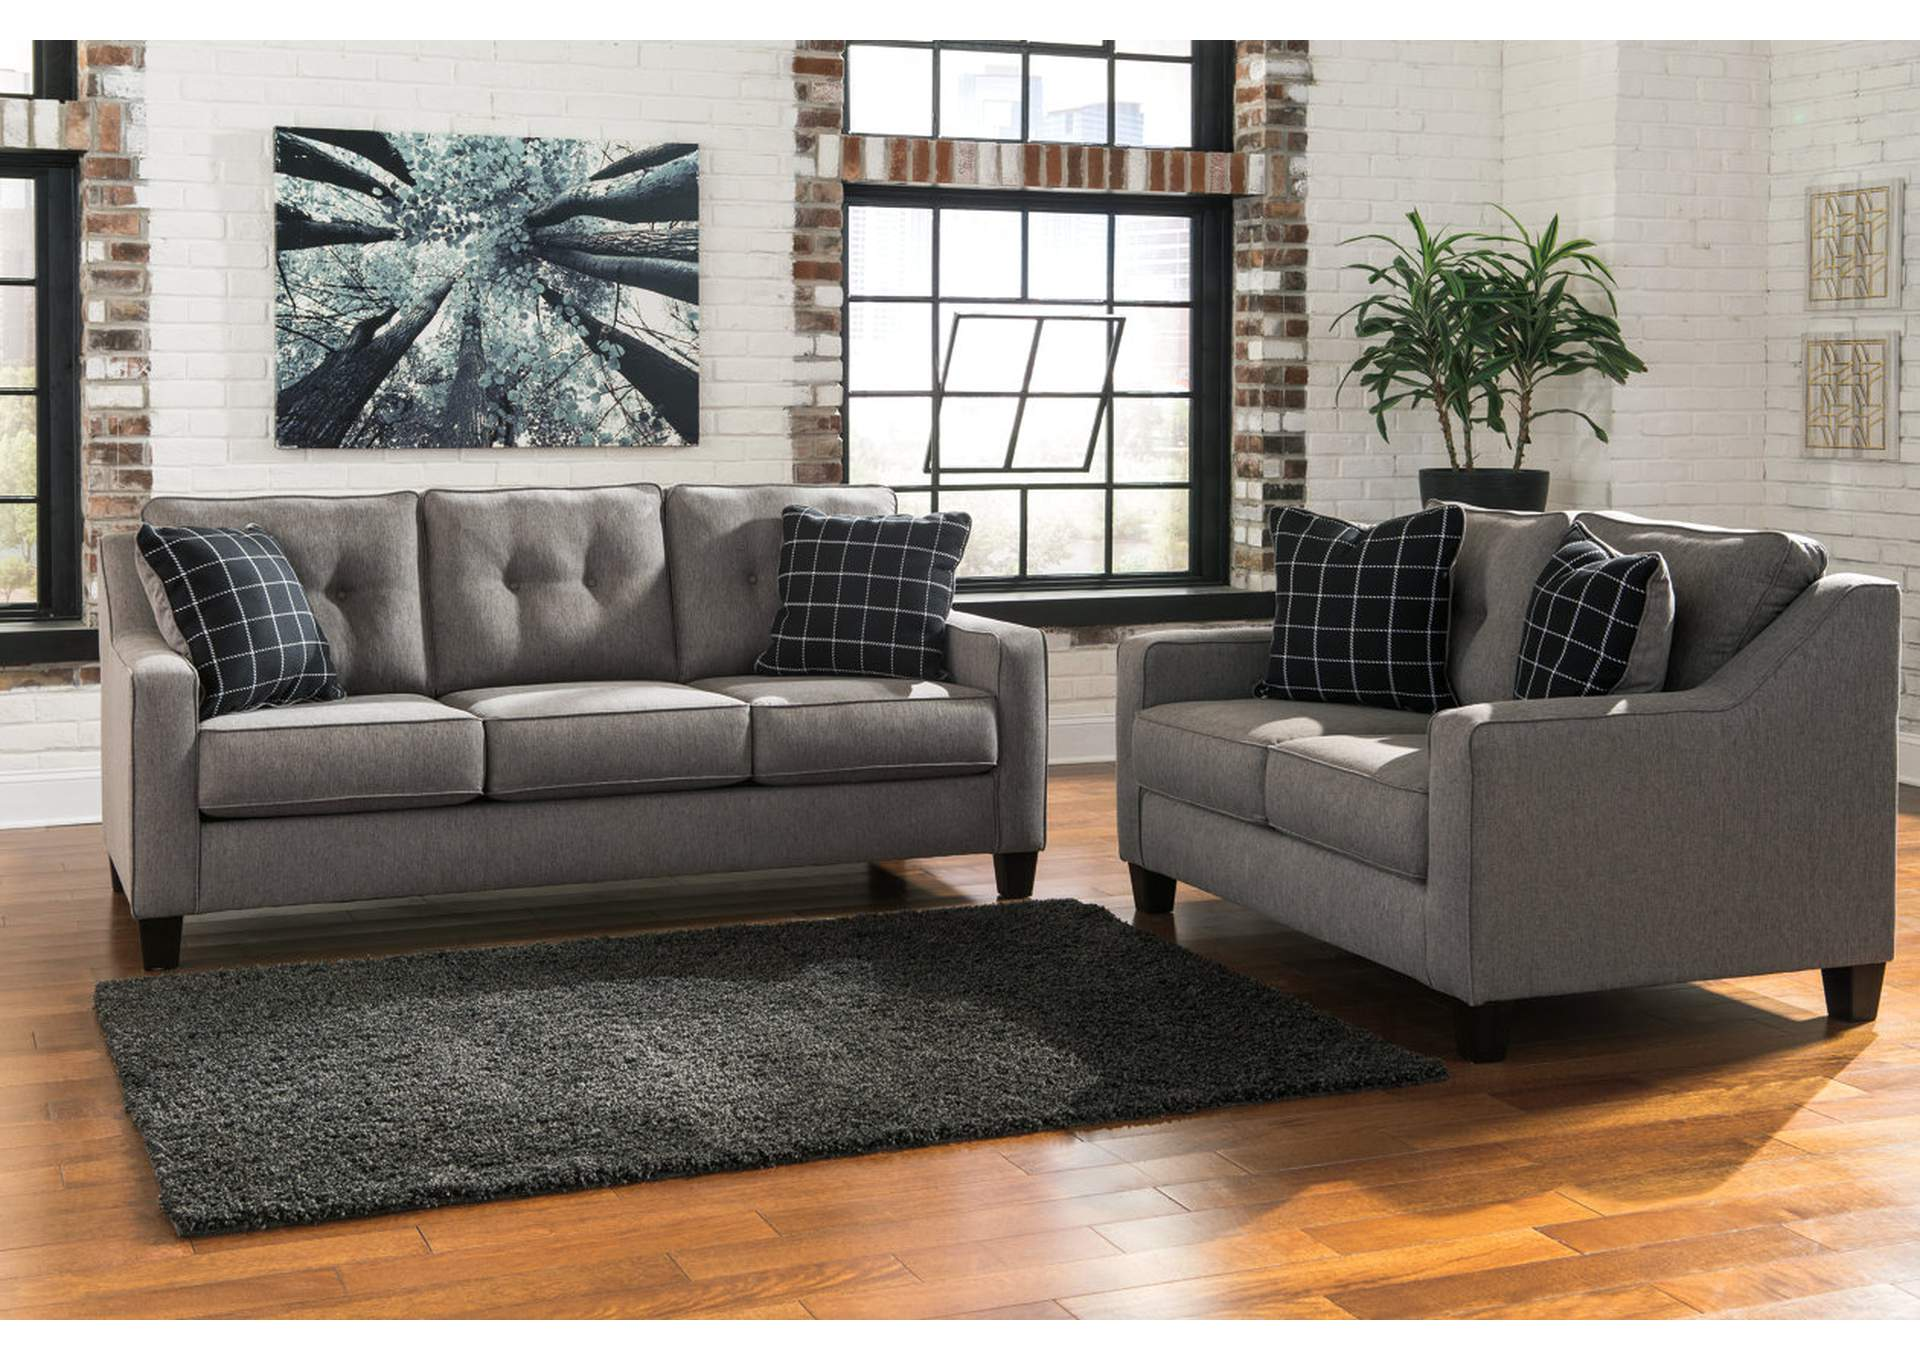 furniture outlet chicago llc chicago il brindon charcoal sofa and loveseat. Black Bedroom Furniture Sets. Home Design Ideas